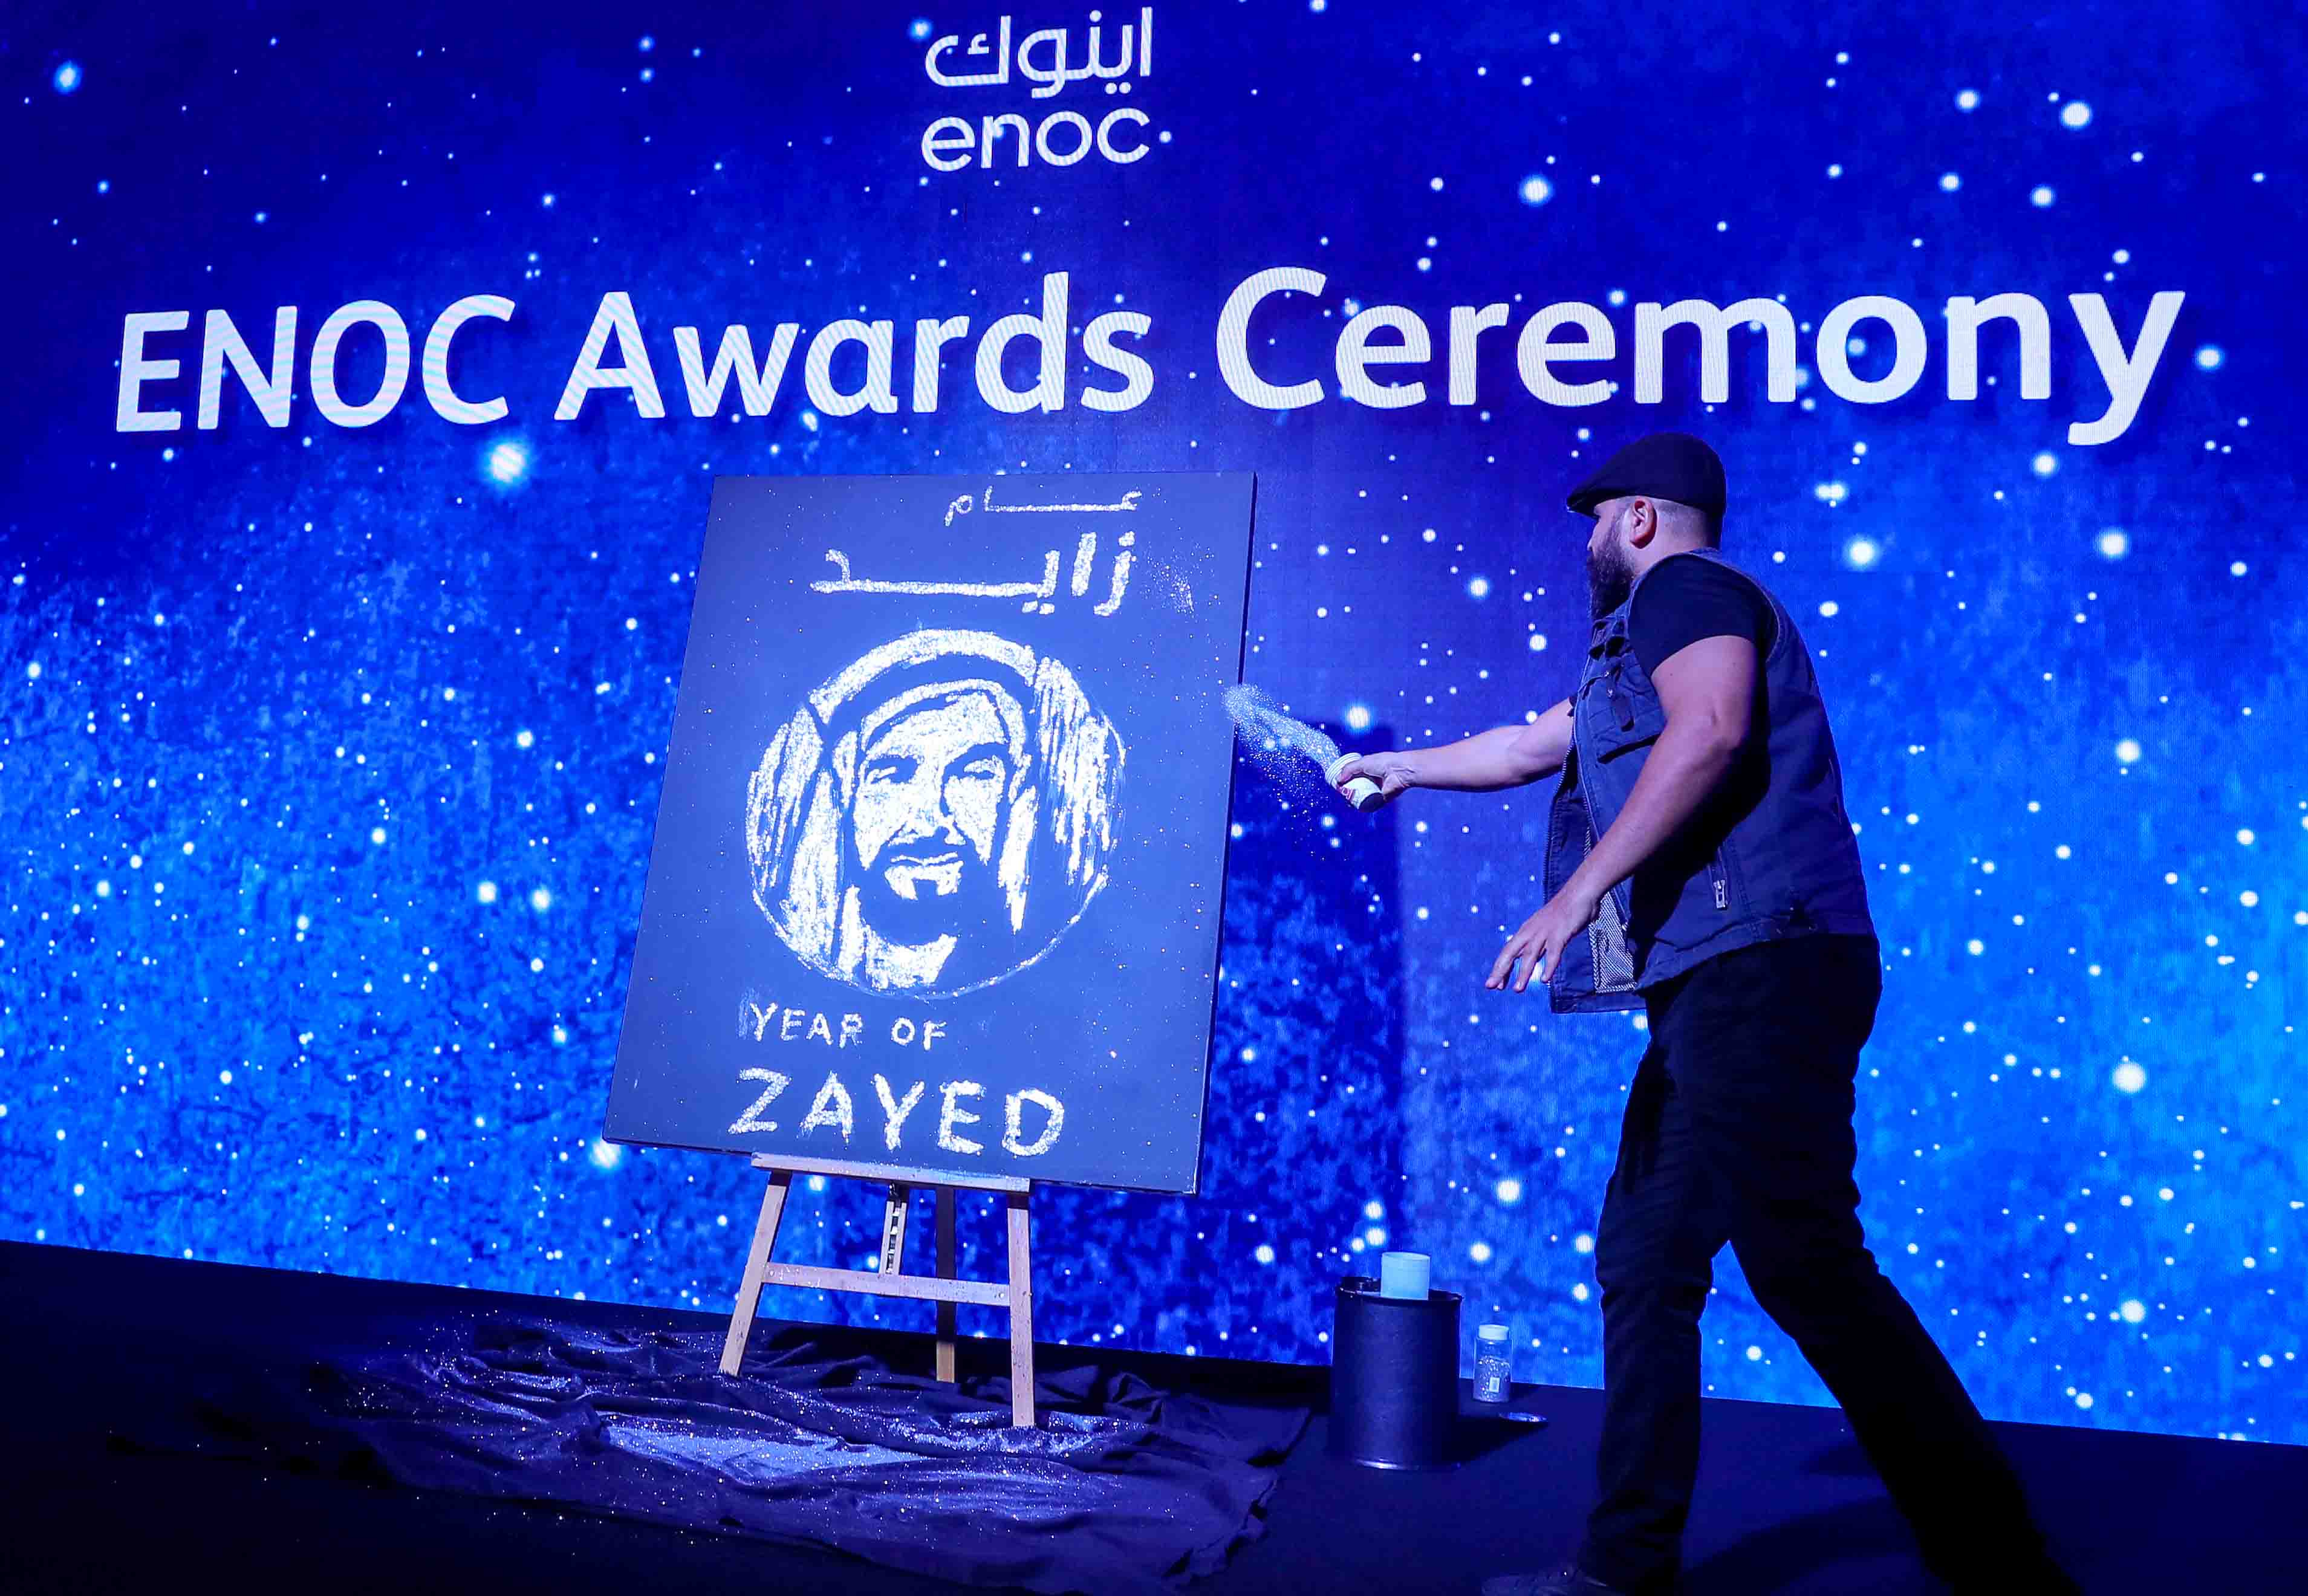 ENOC Honours Employees' Competence, Commitment, Achievements at Awards Ceremony